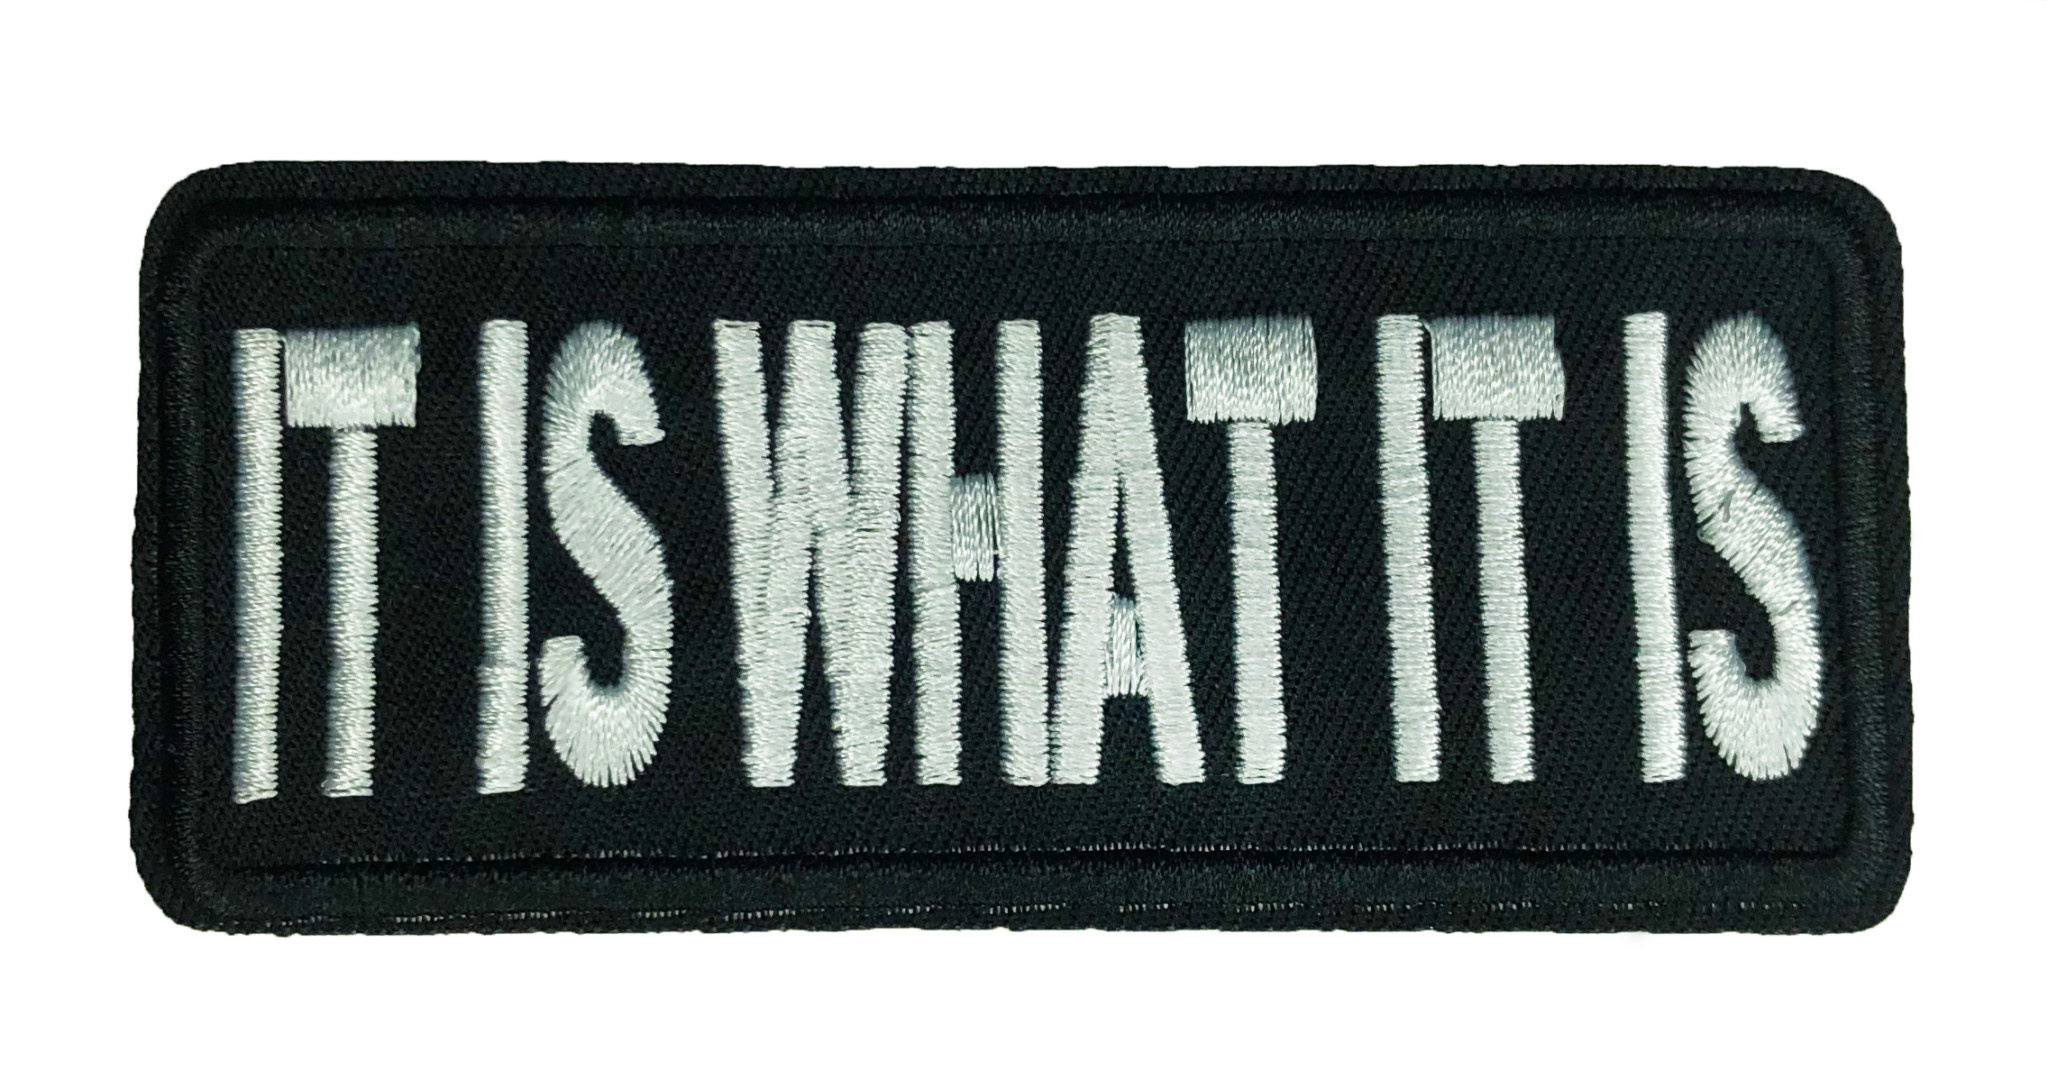 THE SHOP 8 STATEMENT PATCHES-6